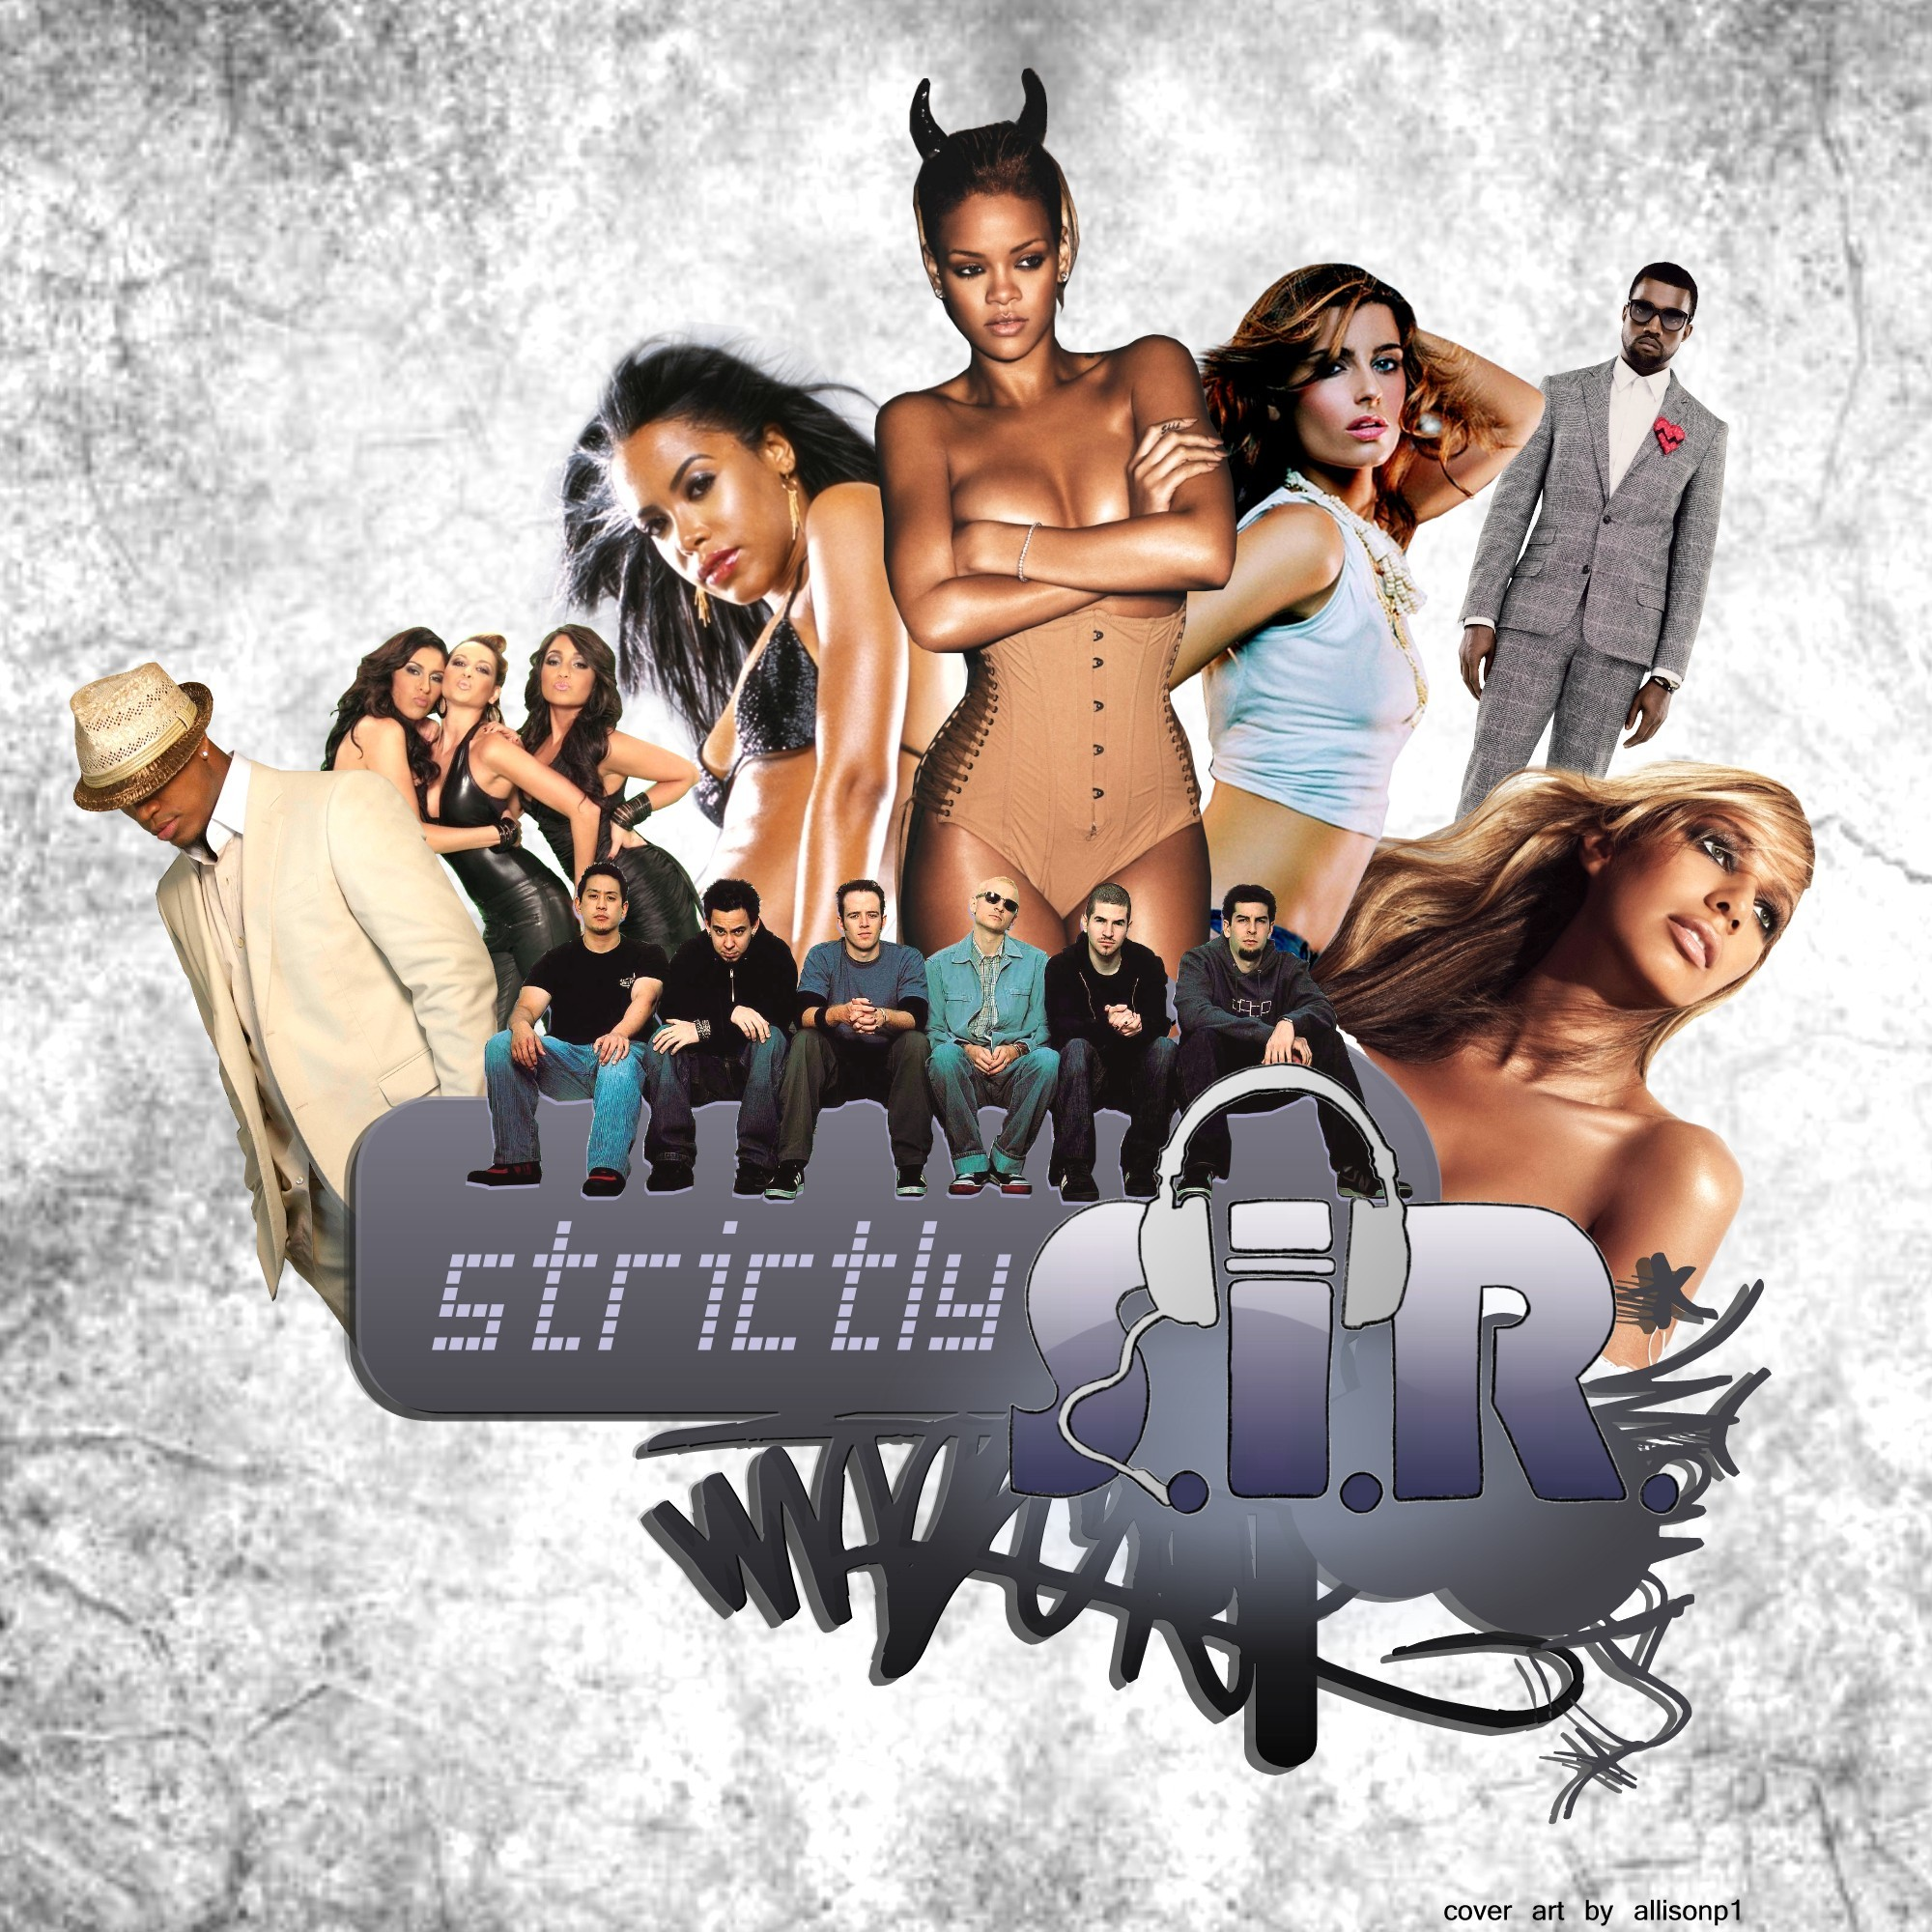 08 - 2Pac vs. Nelly Furtado - Changes (Say it Right!) (S.I.R. Remix)